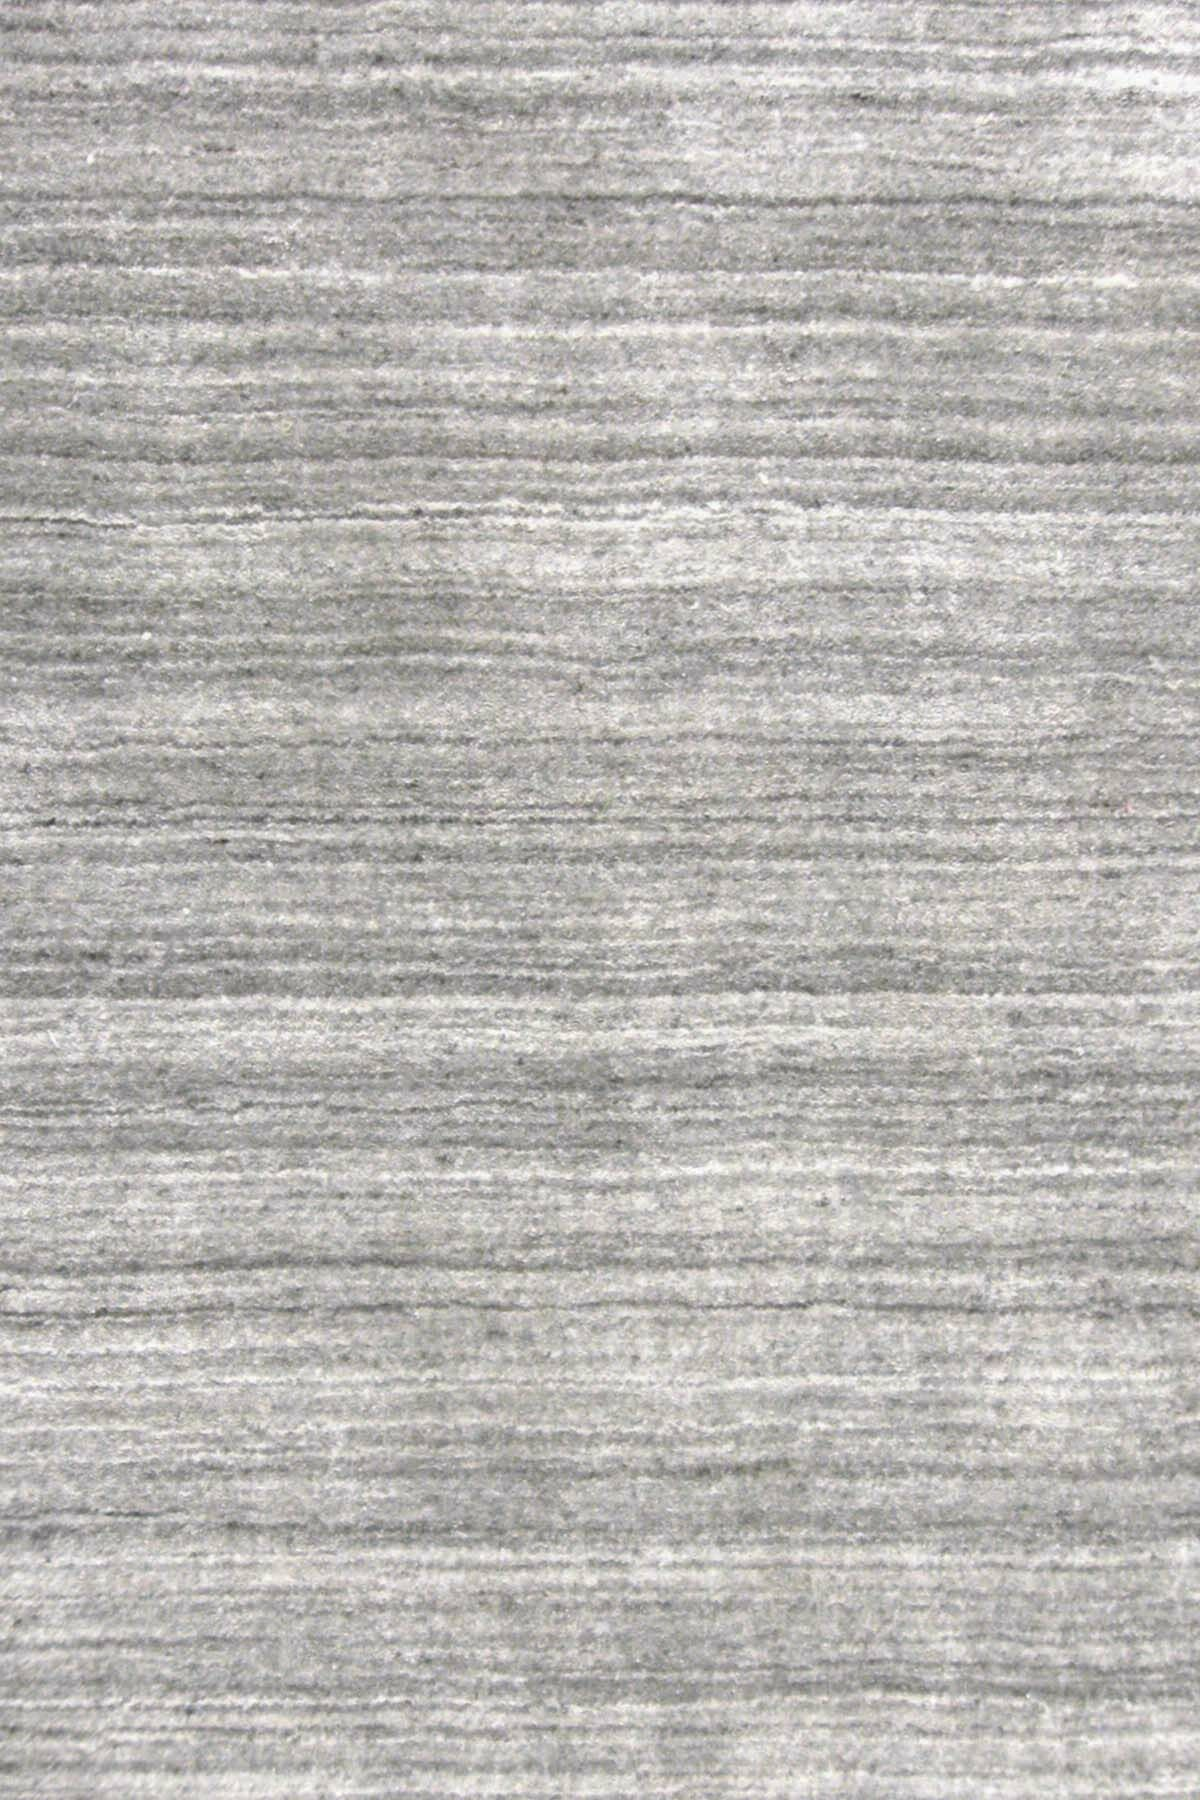 Icelandia Knotted Gray Area Rug Rug Size: Rectangle 8' x 10'